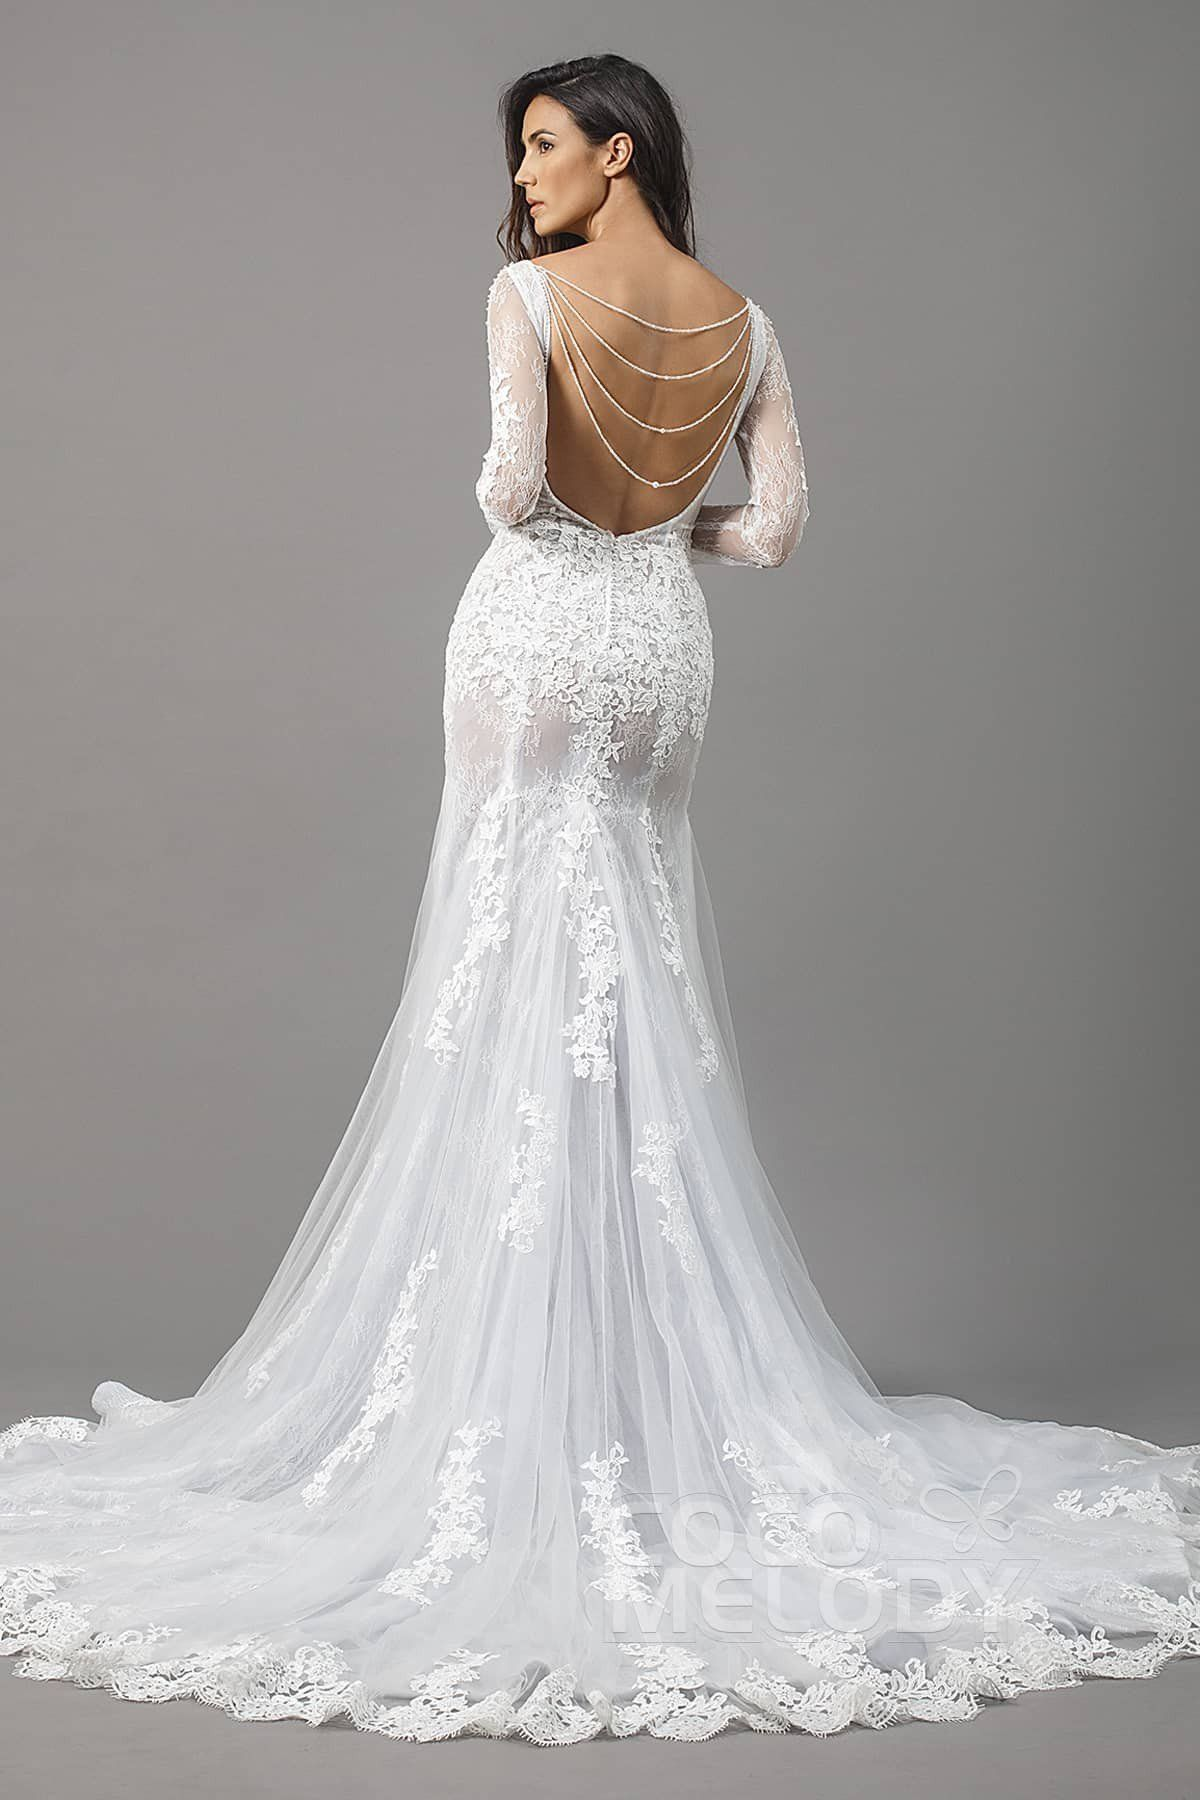 74192e63a3344 Impressive Trumpet-Mermaid Bateau Natural Chapel Train Tulle and Lace  Ivory Silver Cloud Long Sleeve Open Back Wedding Dress with Appliques and  Beading ...